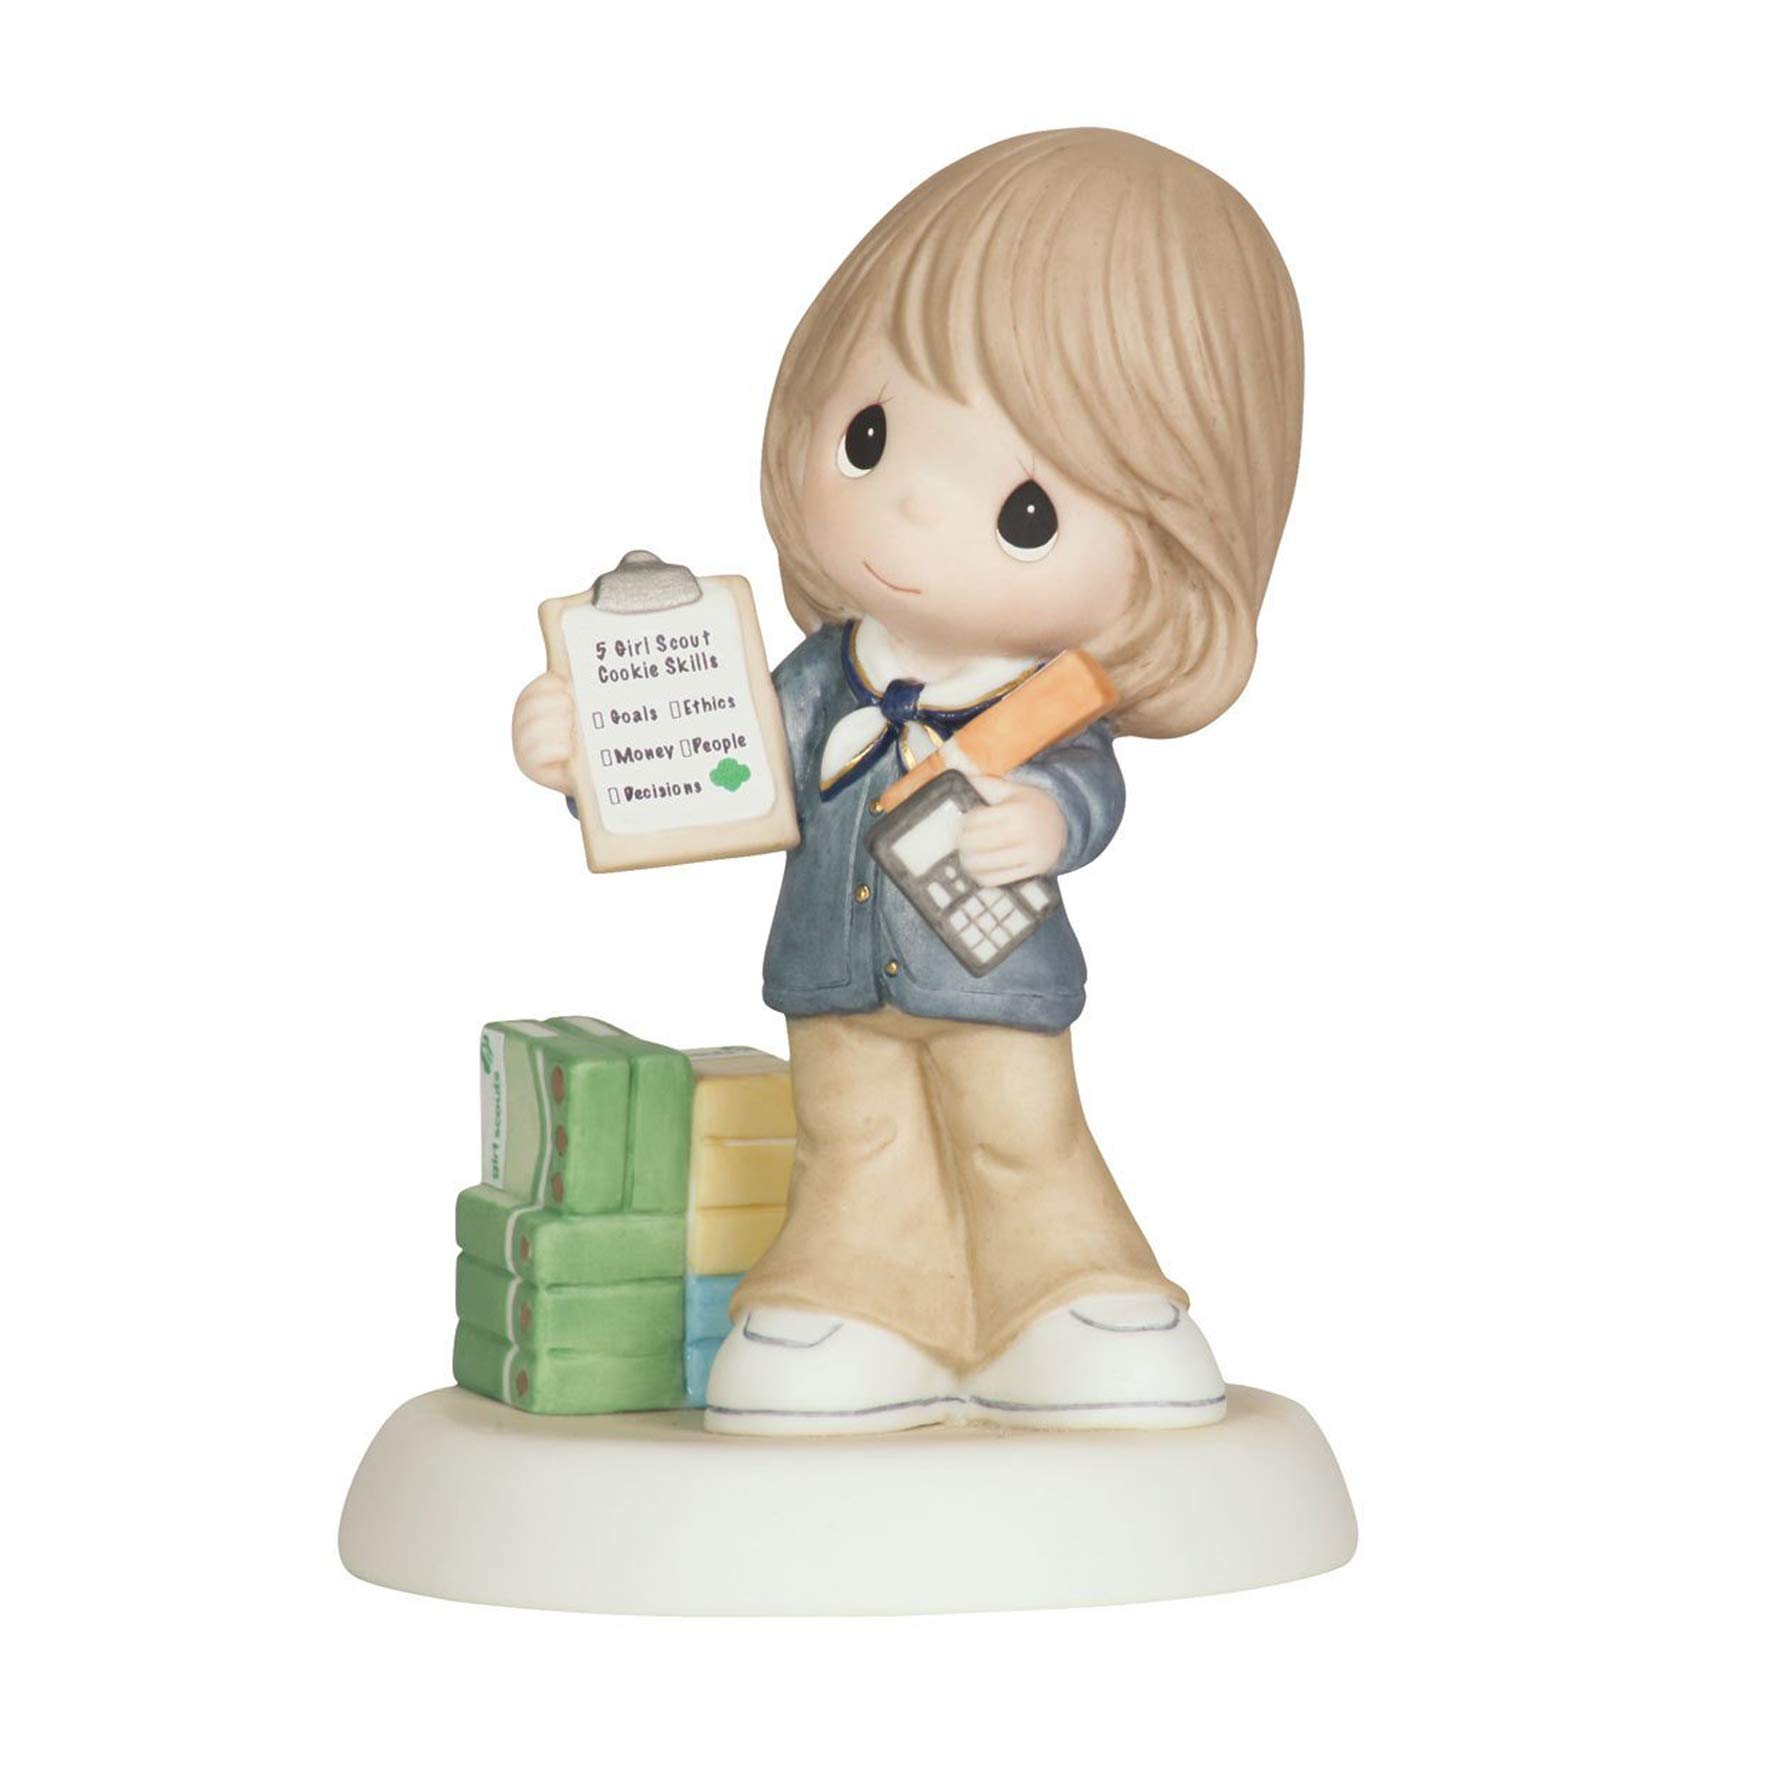 Precious Moments - We Can Always Count On You - Girl Scouts Figurine - 104032 by Precious Moments